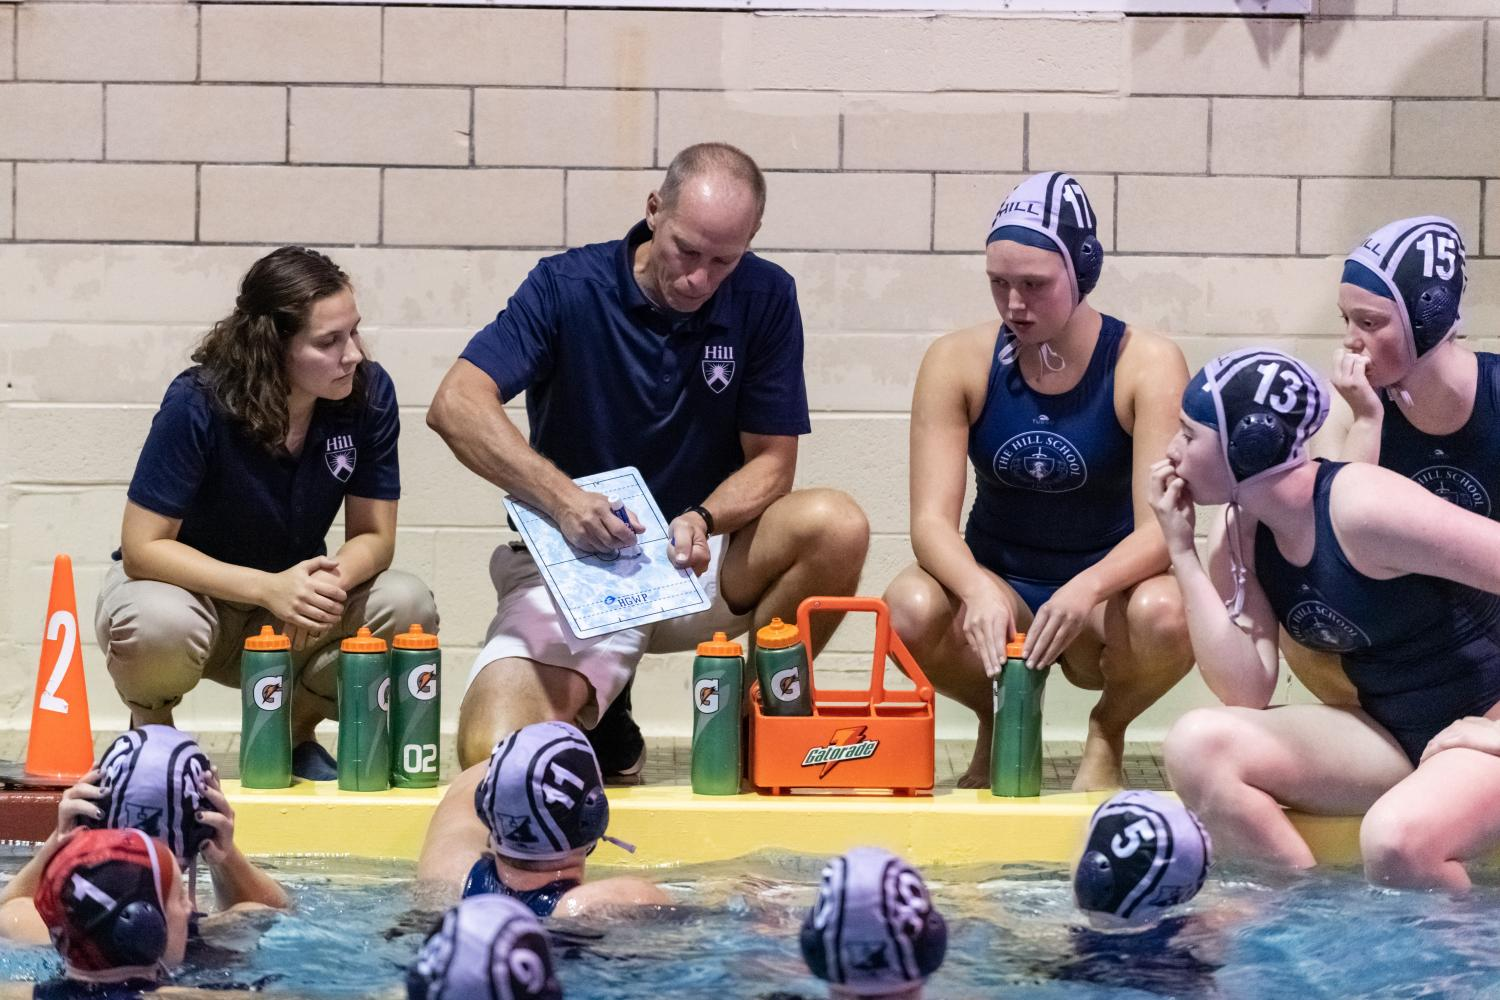 HGWP competes in Beast of the East